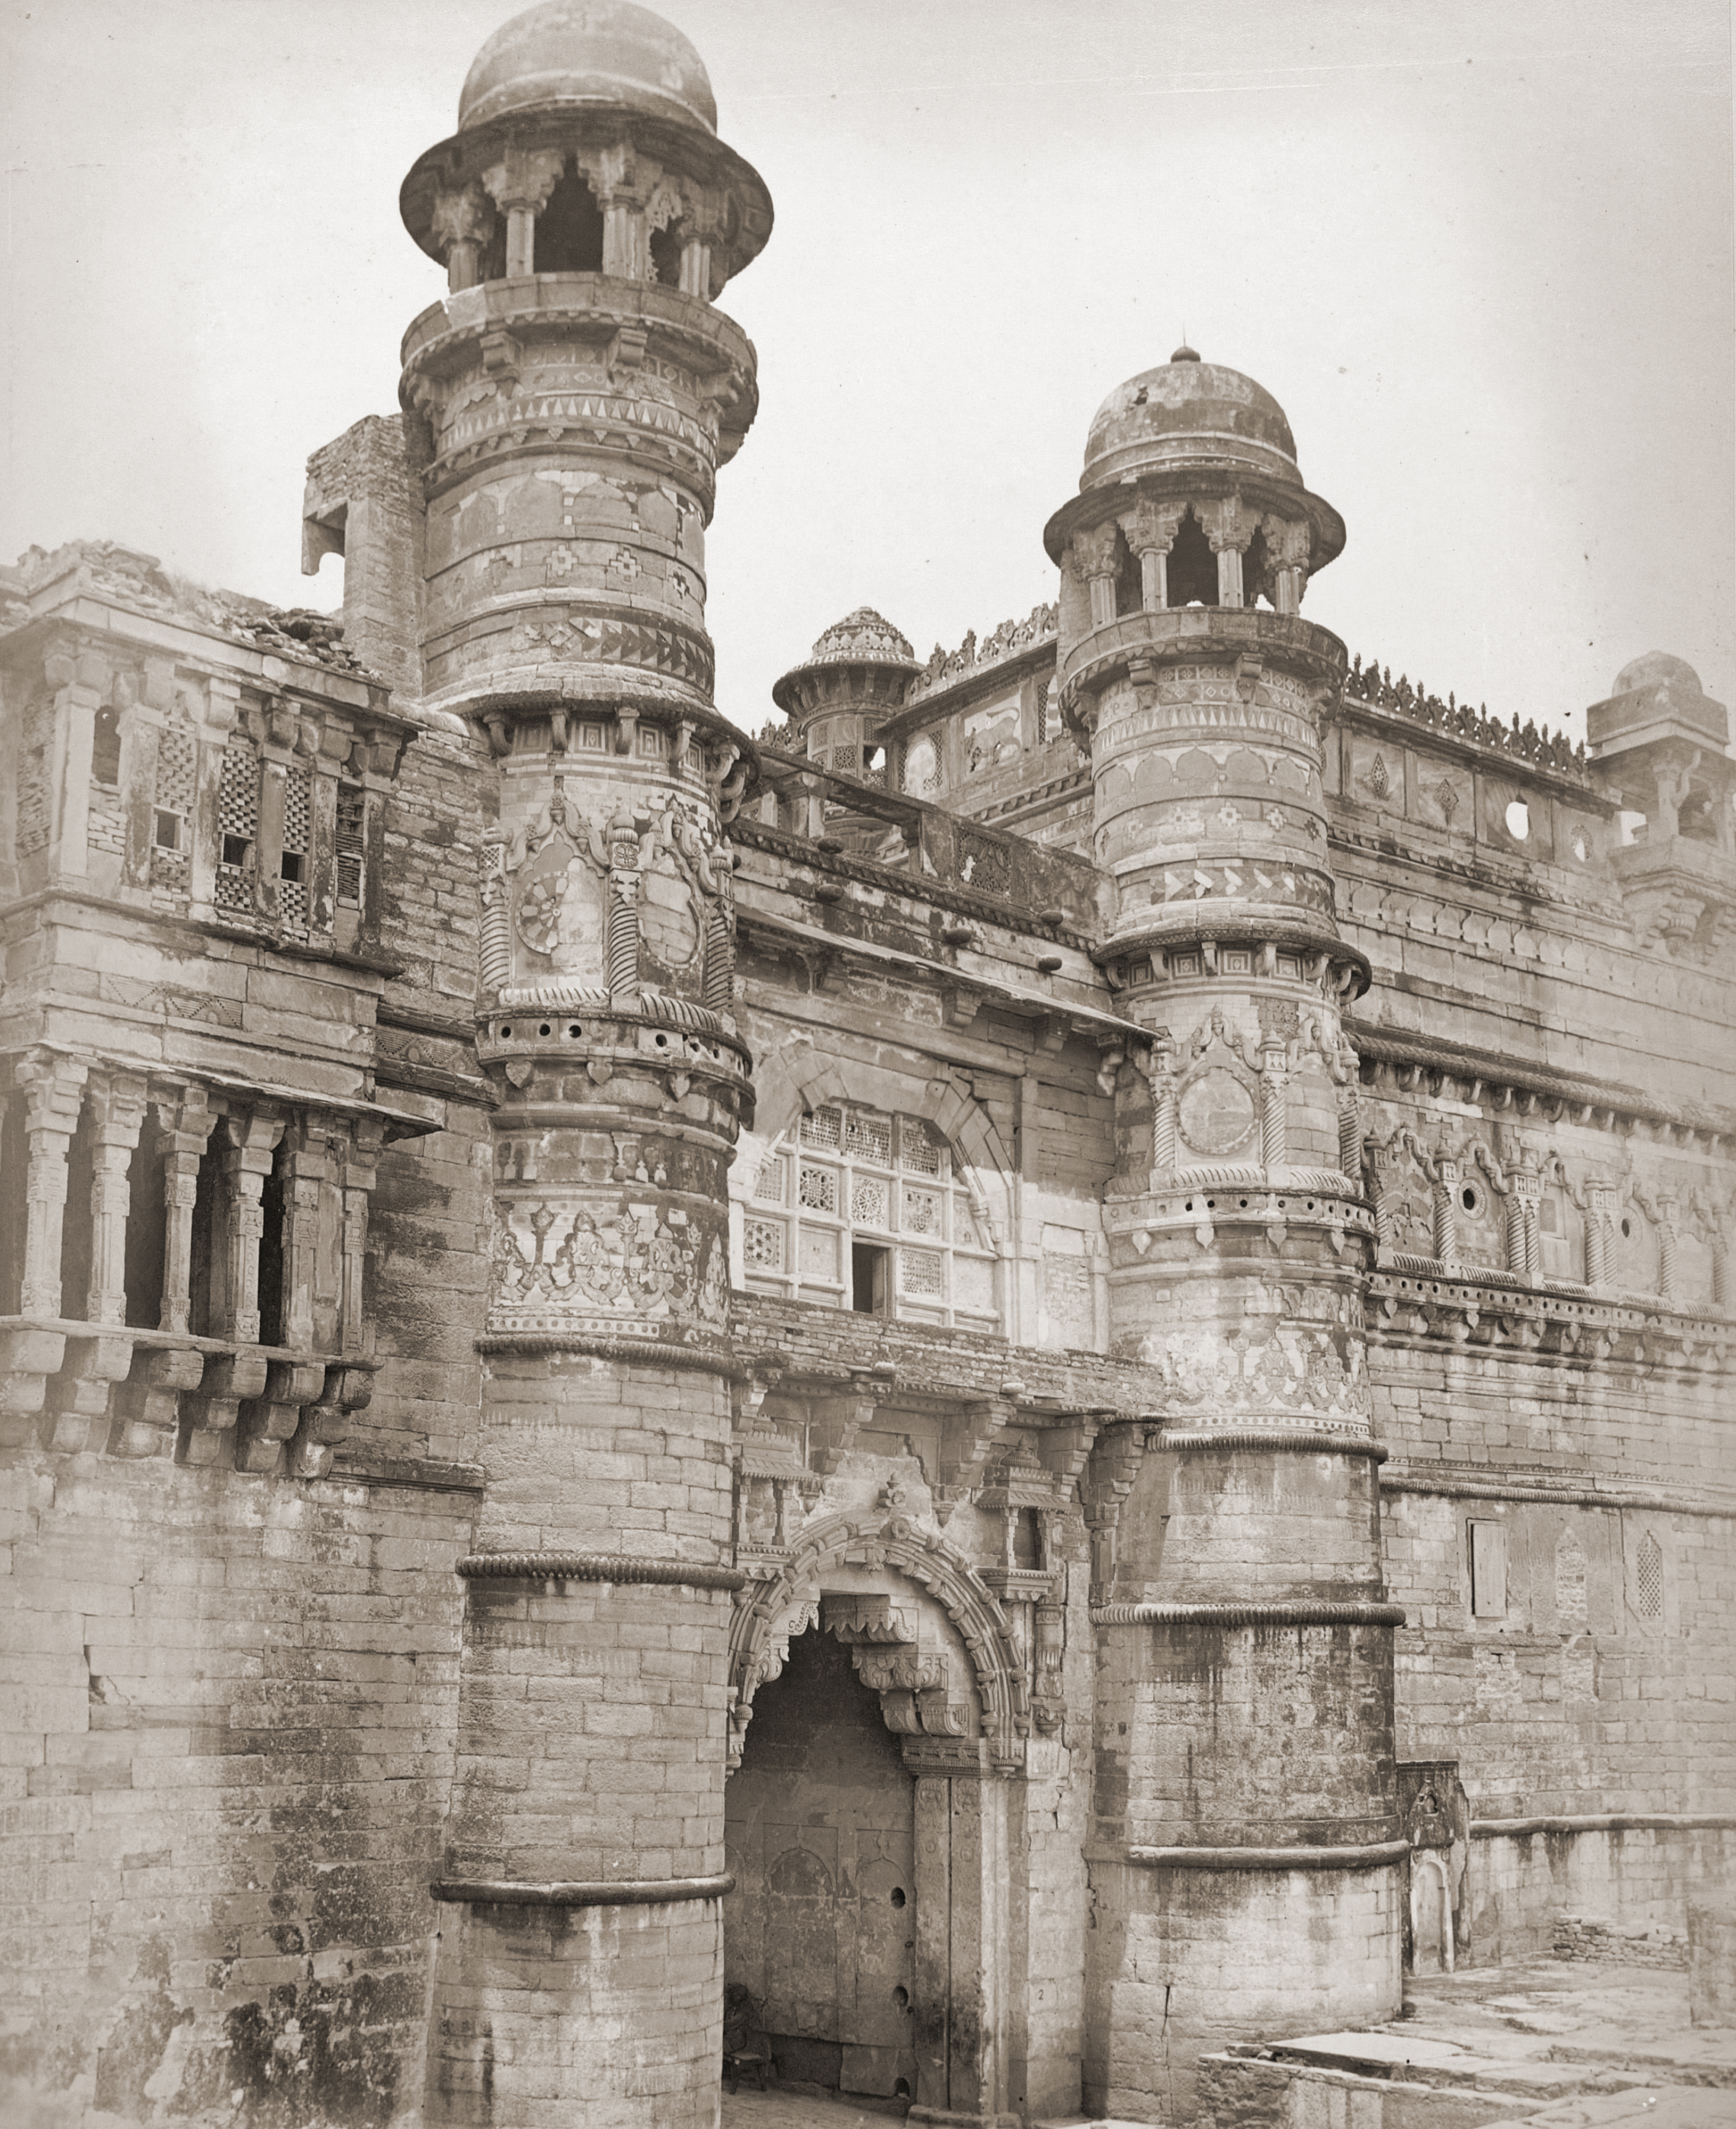 dating gwalior Arihant emporiumfamous for selling gwalior style silver boxes decorated with images from the tile work statues and other remains dating back to 1st and 2nd.